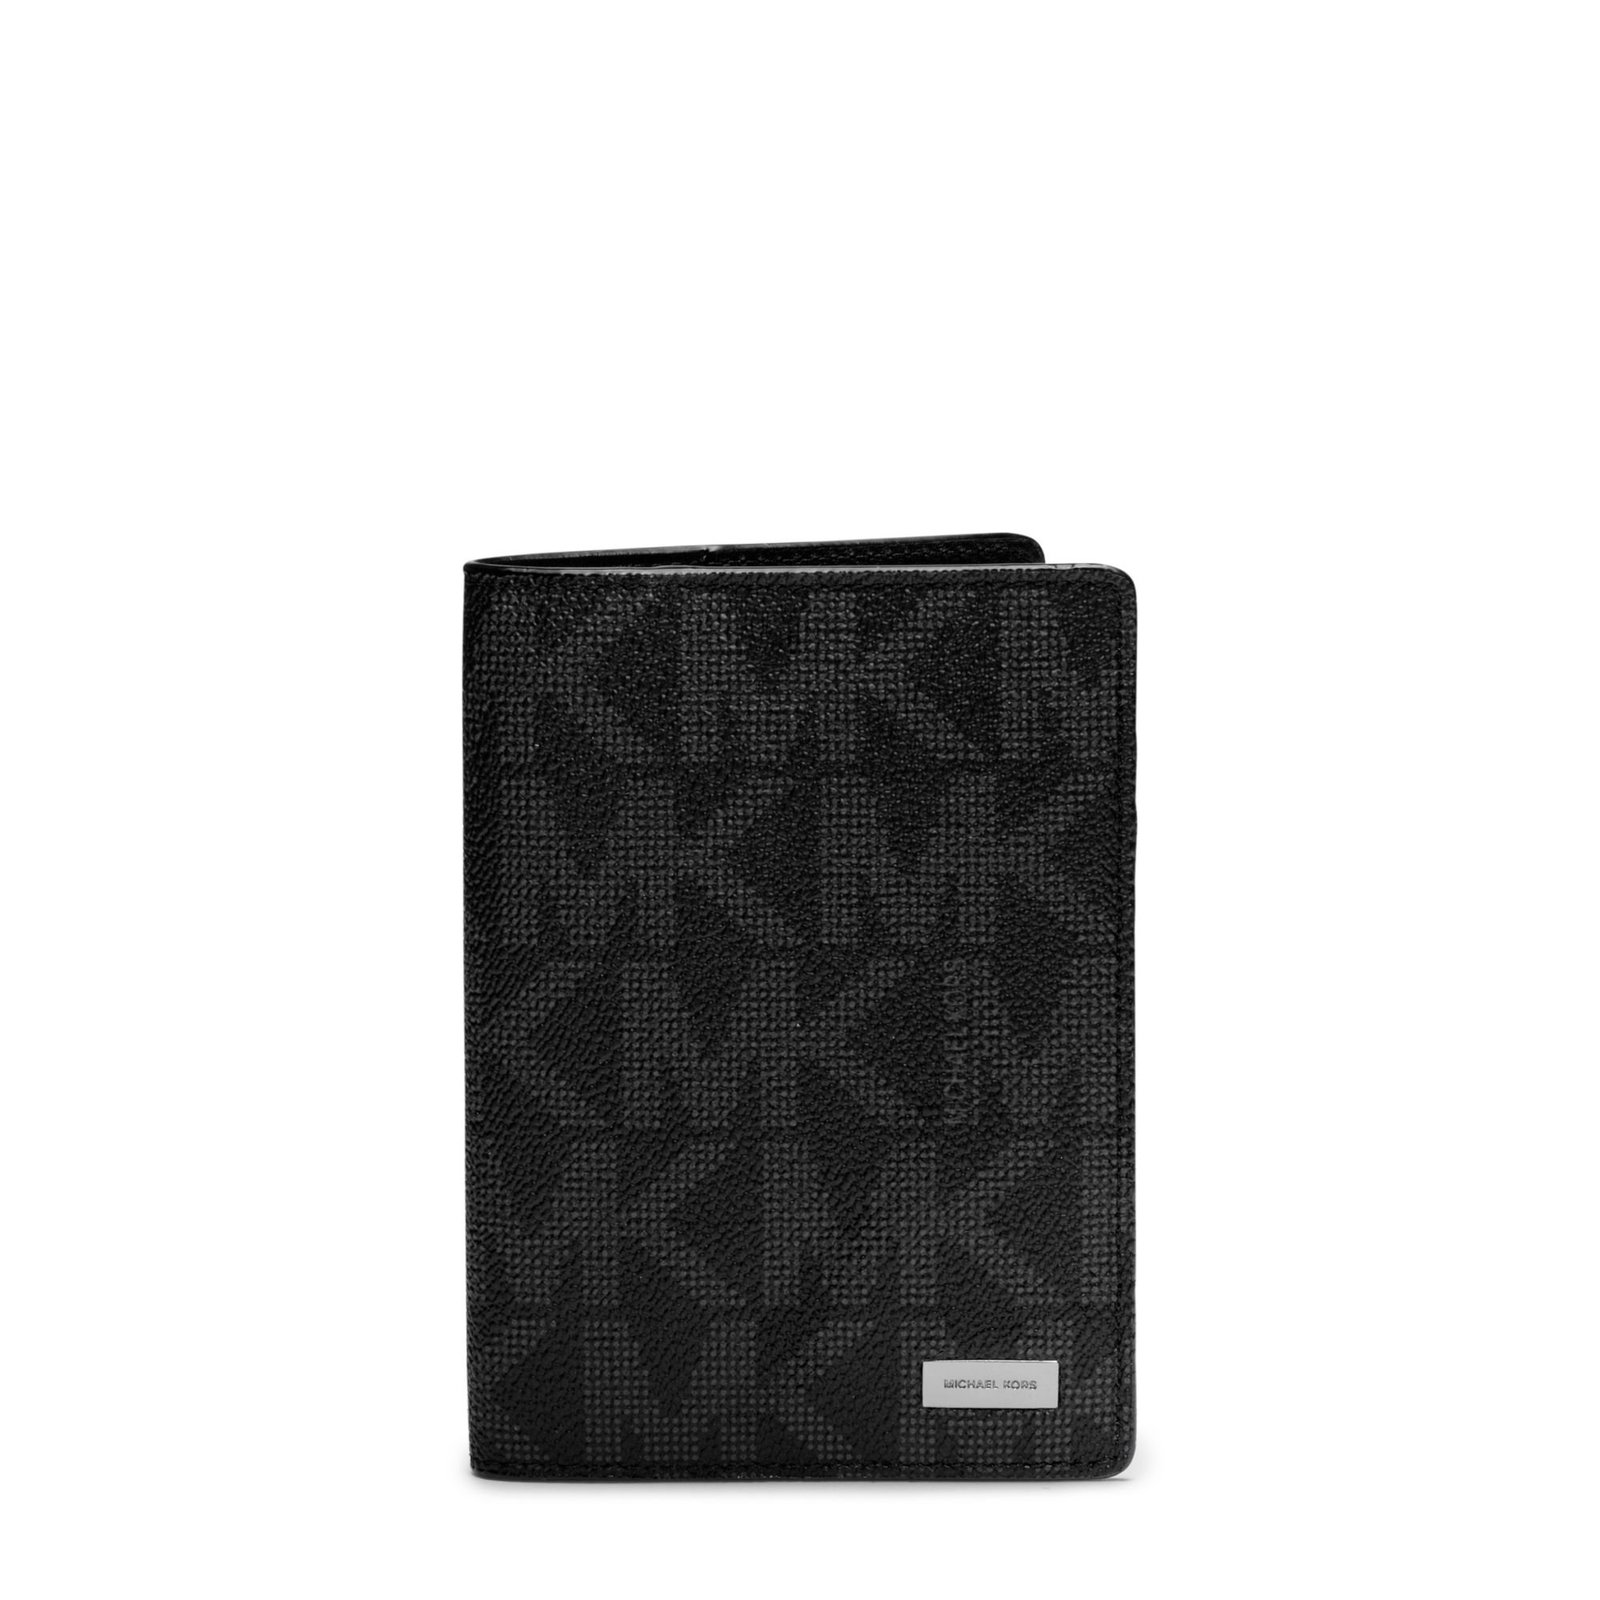 Primary image for Michael Kors 36T6SMNV1B Jet Set Black PVC MK Signature Passport Card Holder